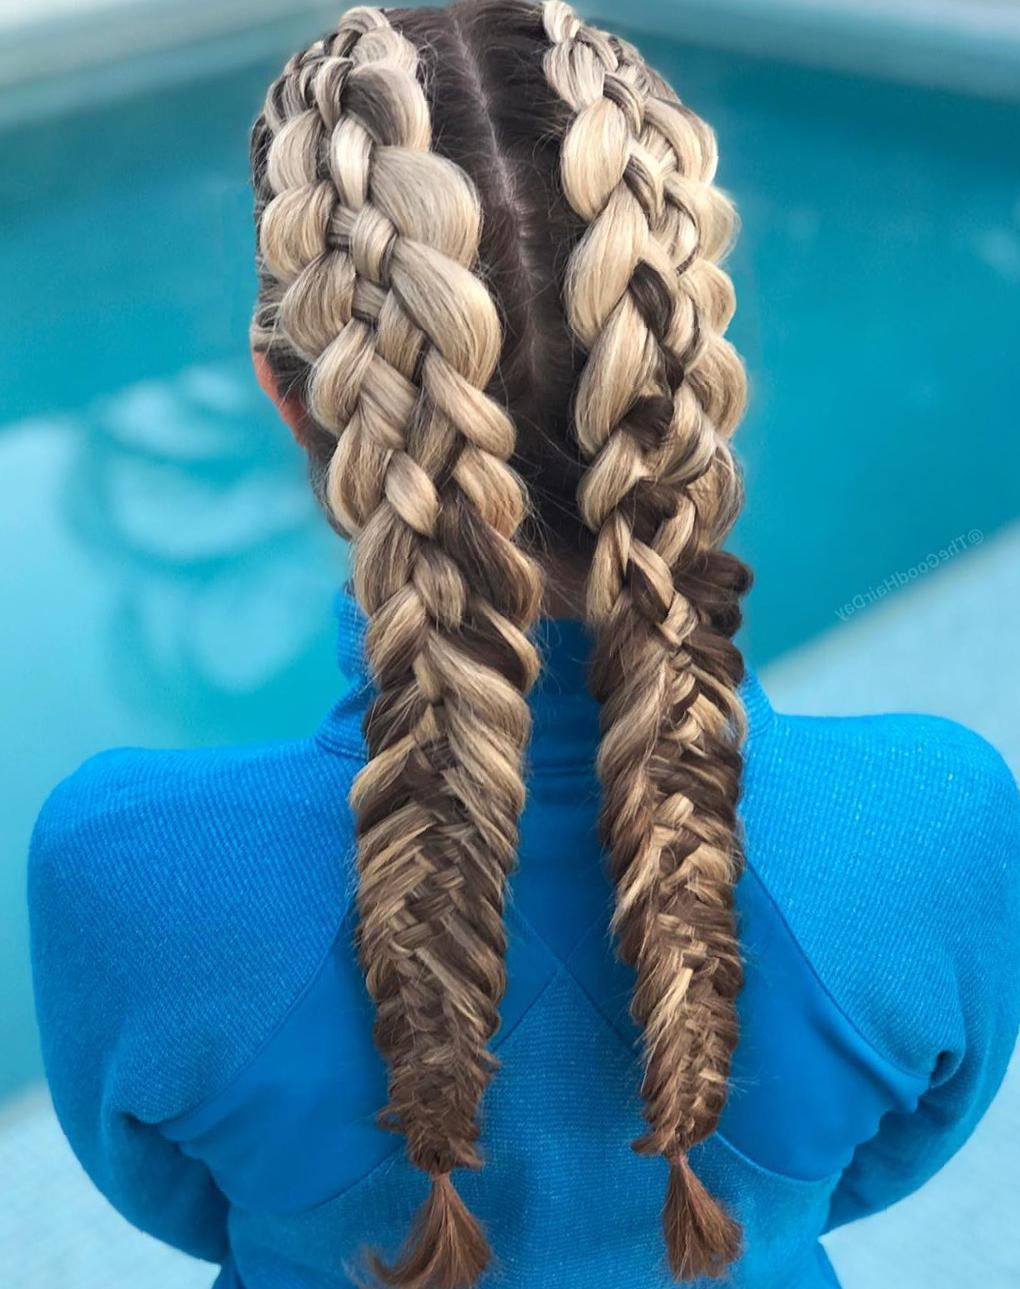 50 Trendy Double Braid Hairstyle Ideas to Keep You Cool - Molitsy Blog